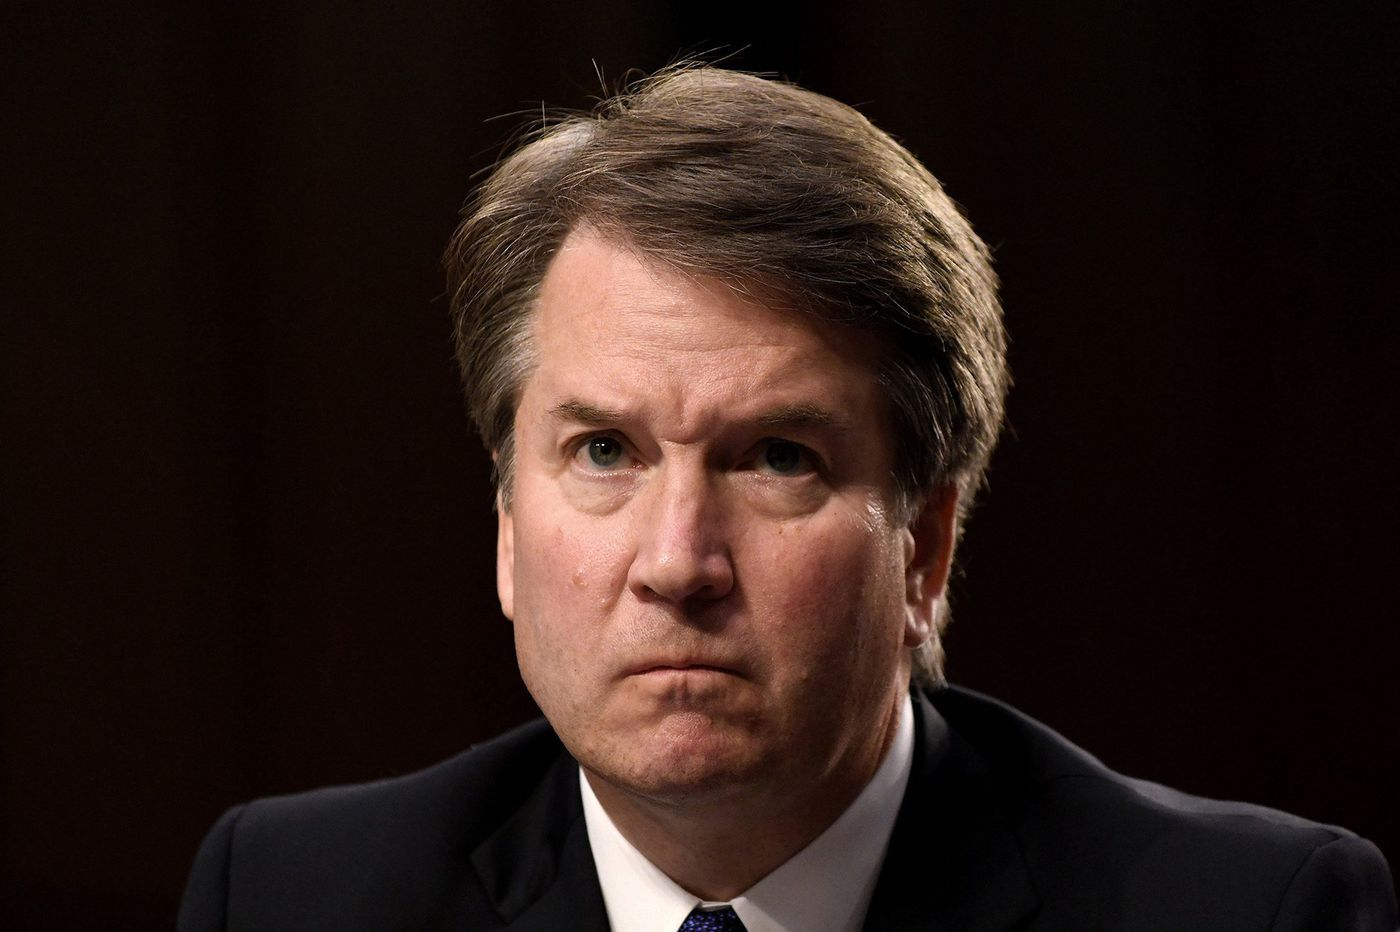 Only one Supreme Court justice has been impeached: Old Bacon Face